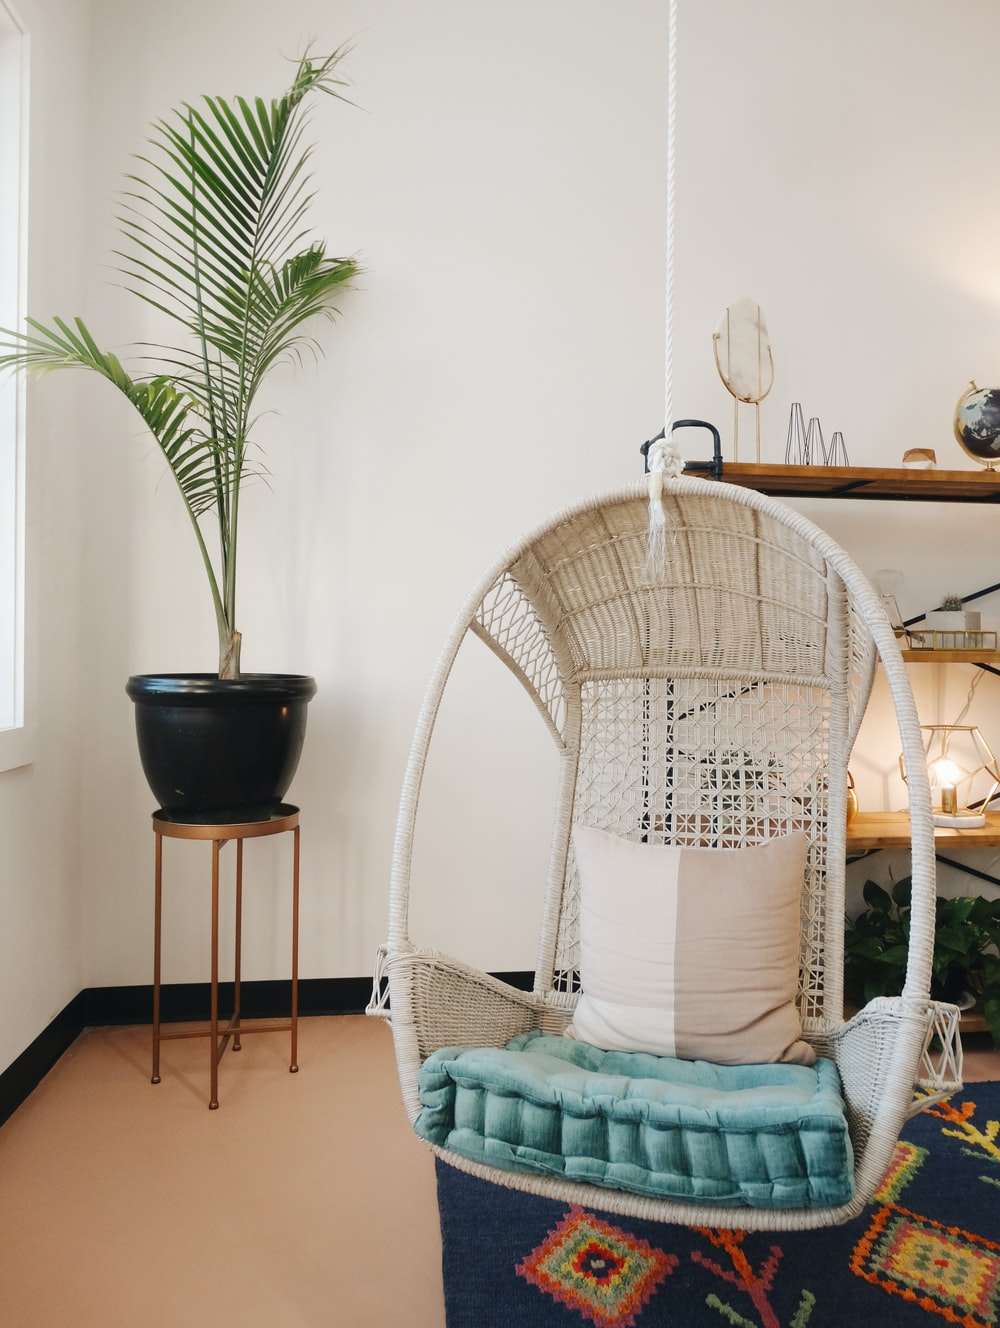 beige and blue egg chair near black potted plant